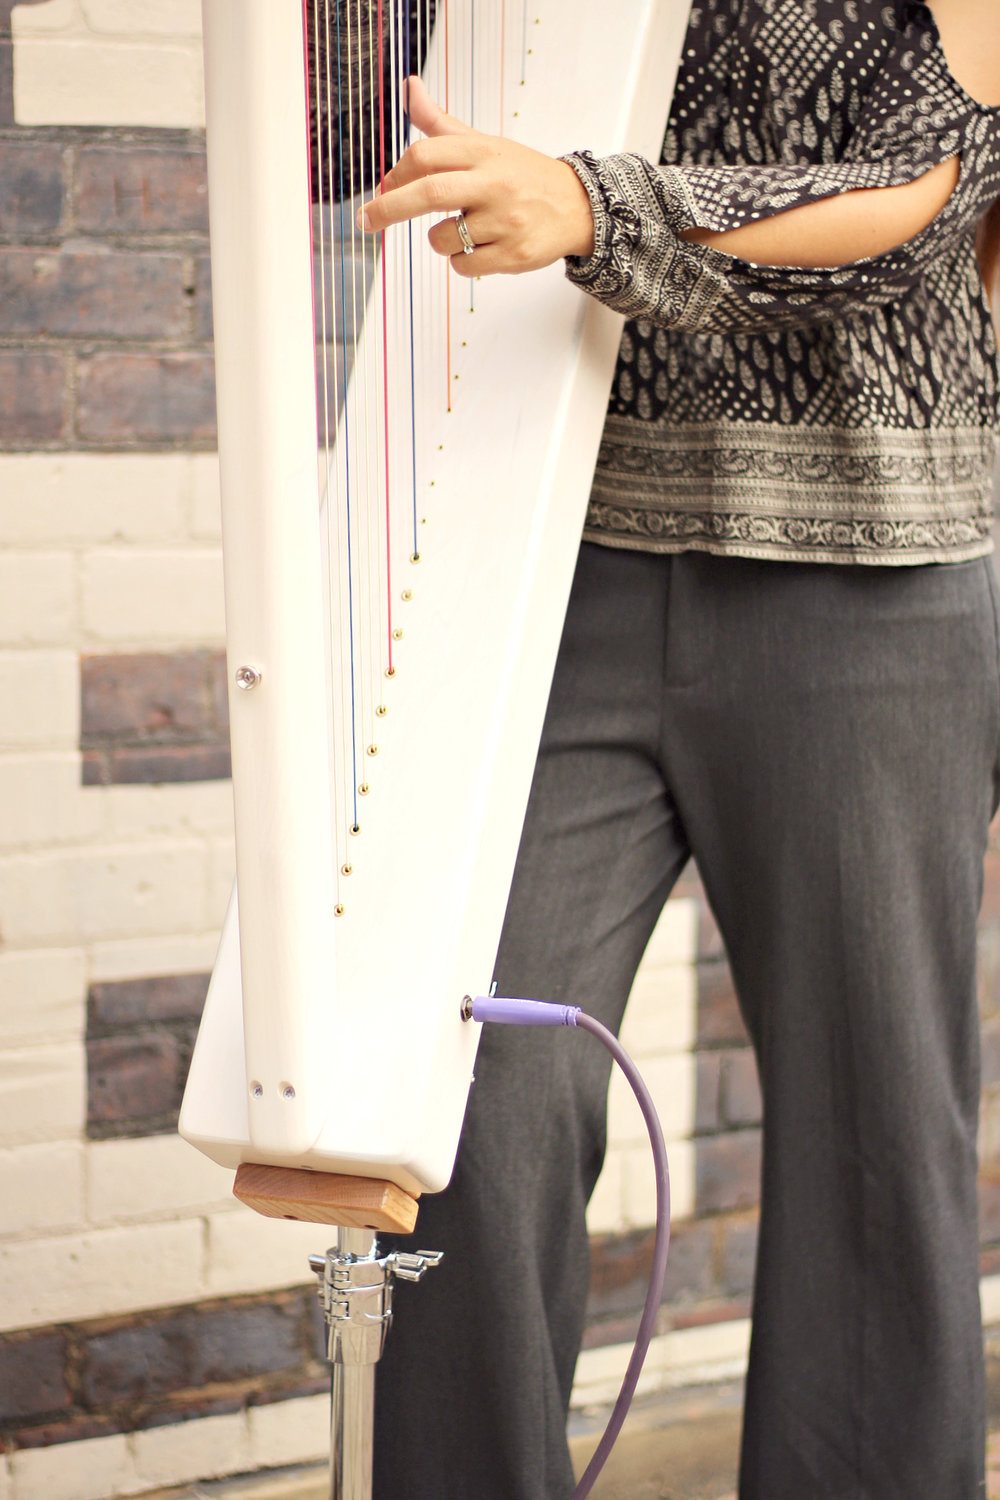 A close-up of the Grand Standing Stand with a Grand Harpsicle® Harp.